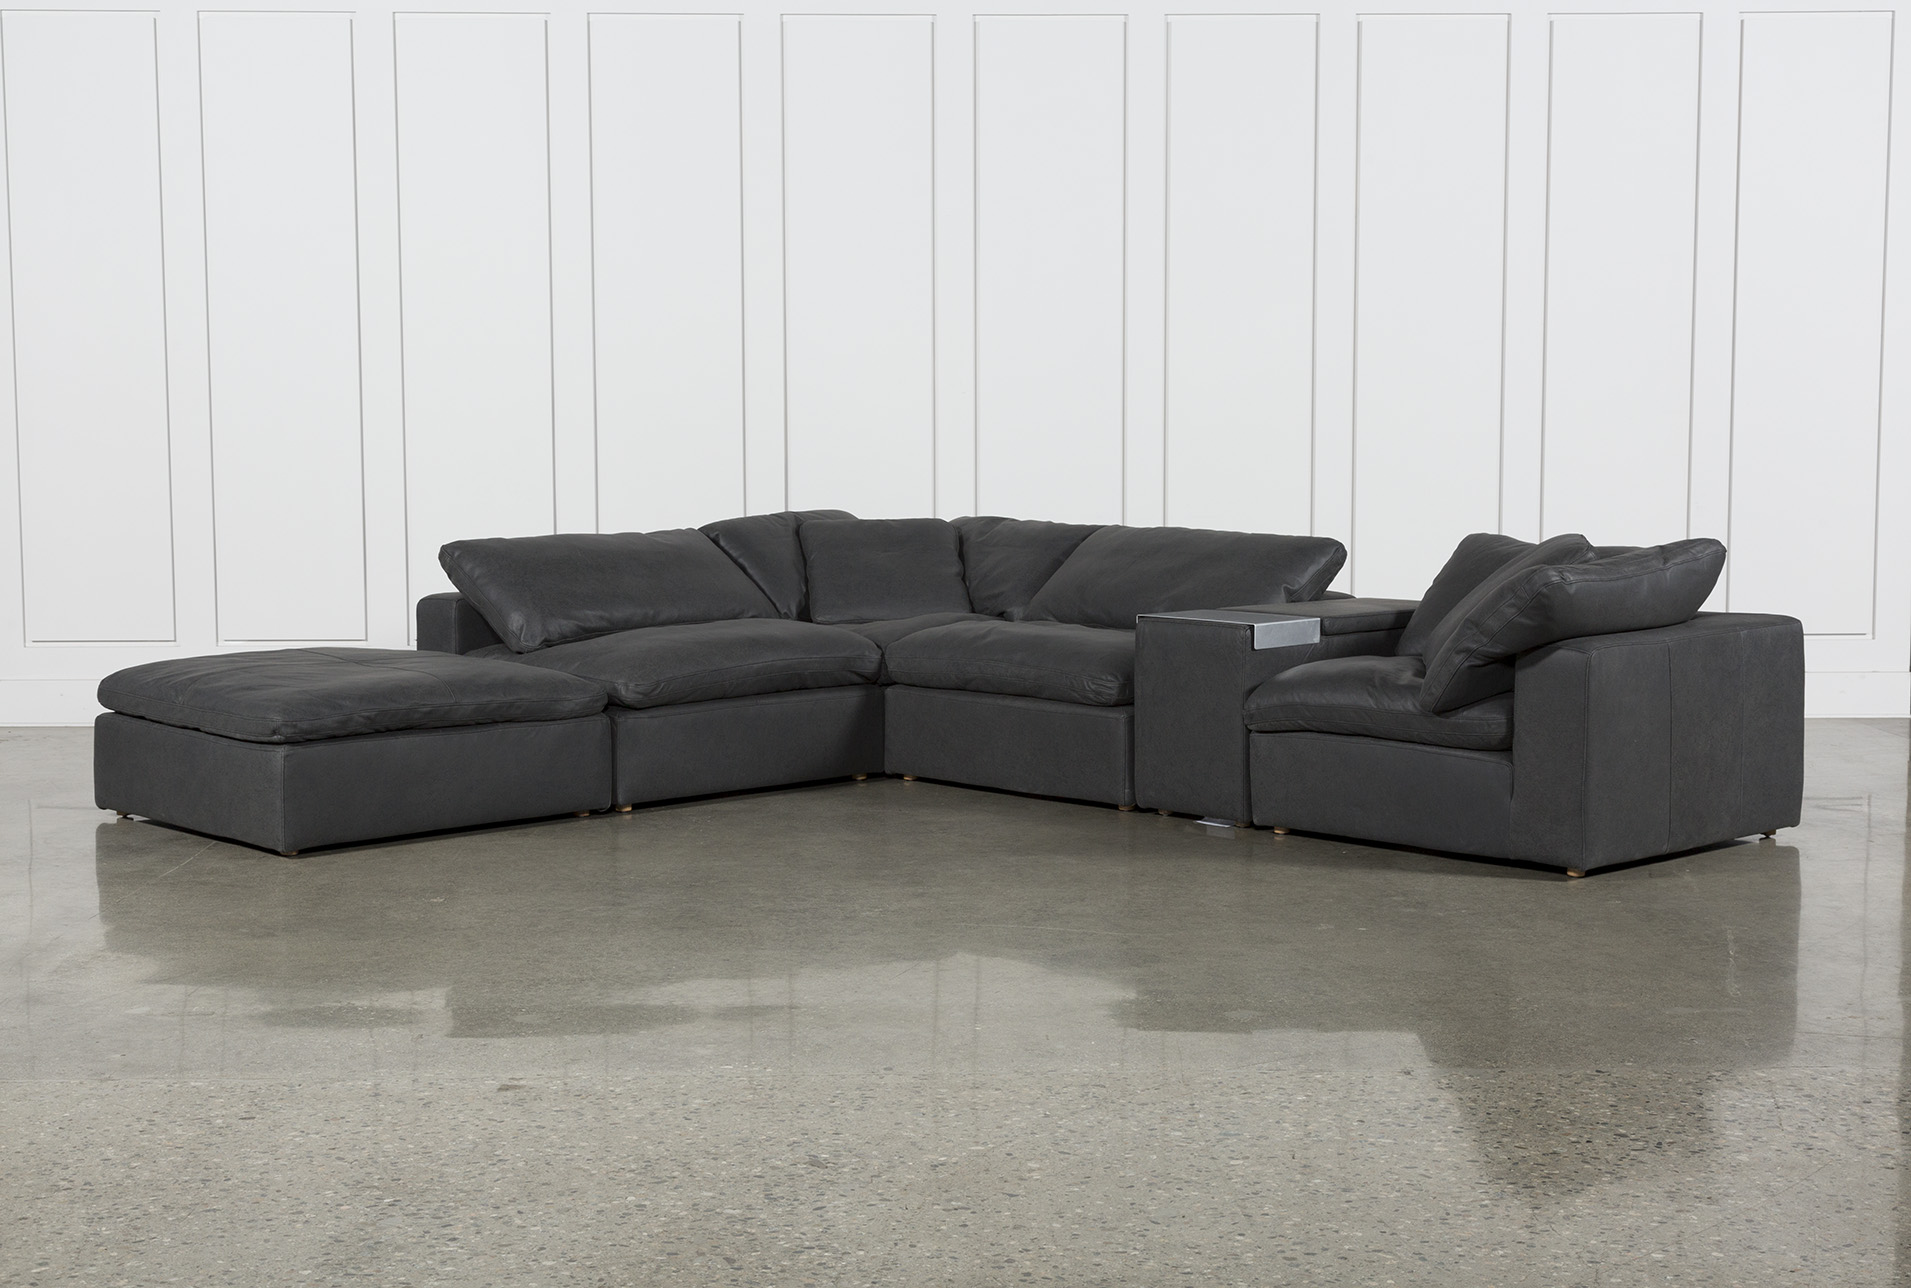 hidden cove grey leather 6 piece sectional with 152 console ottoman